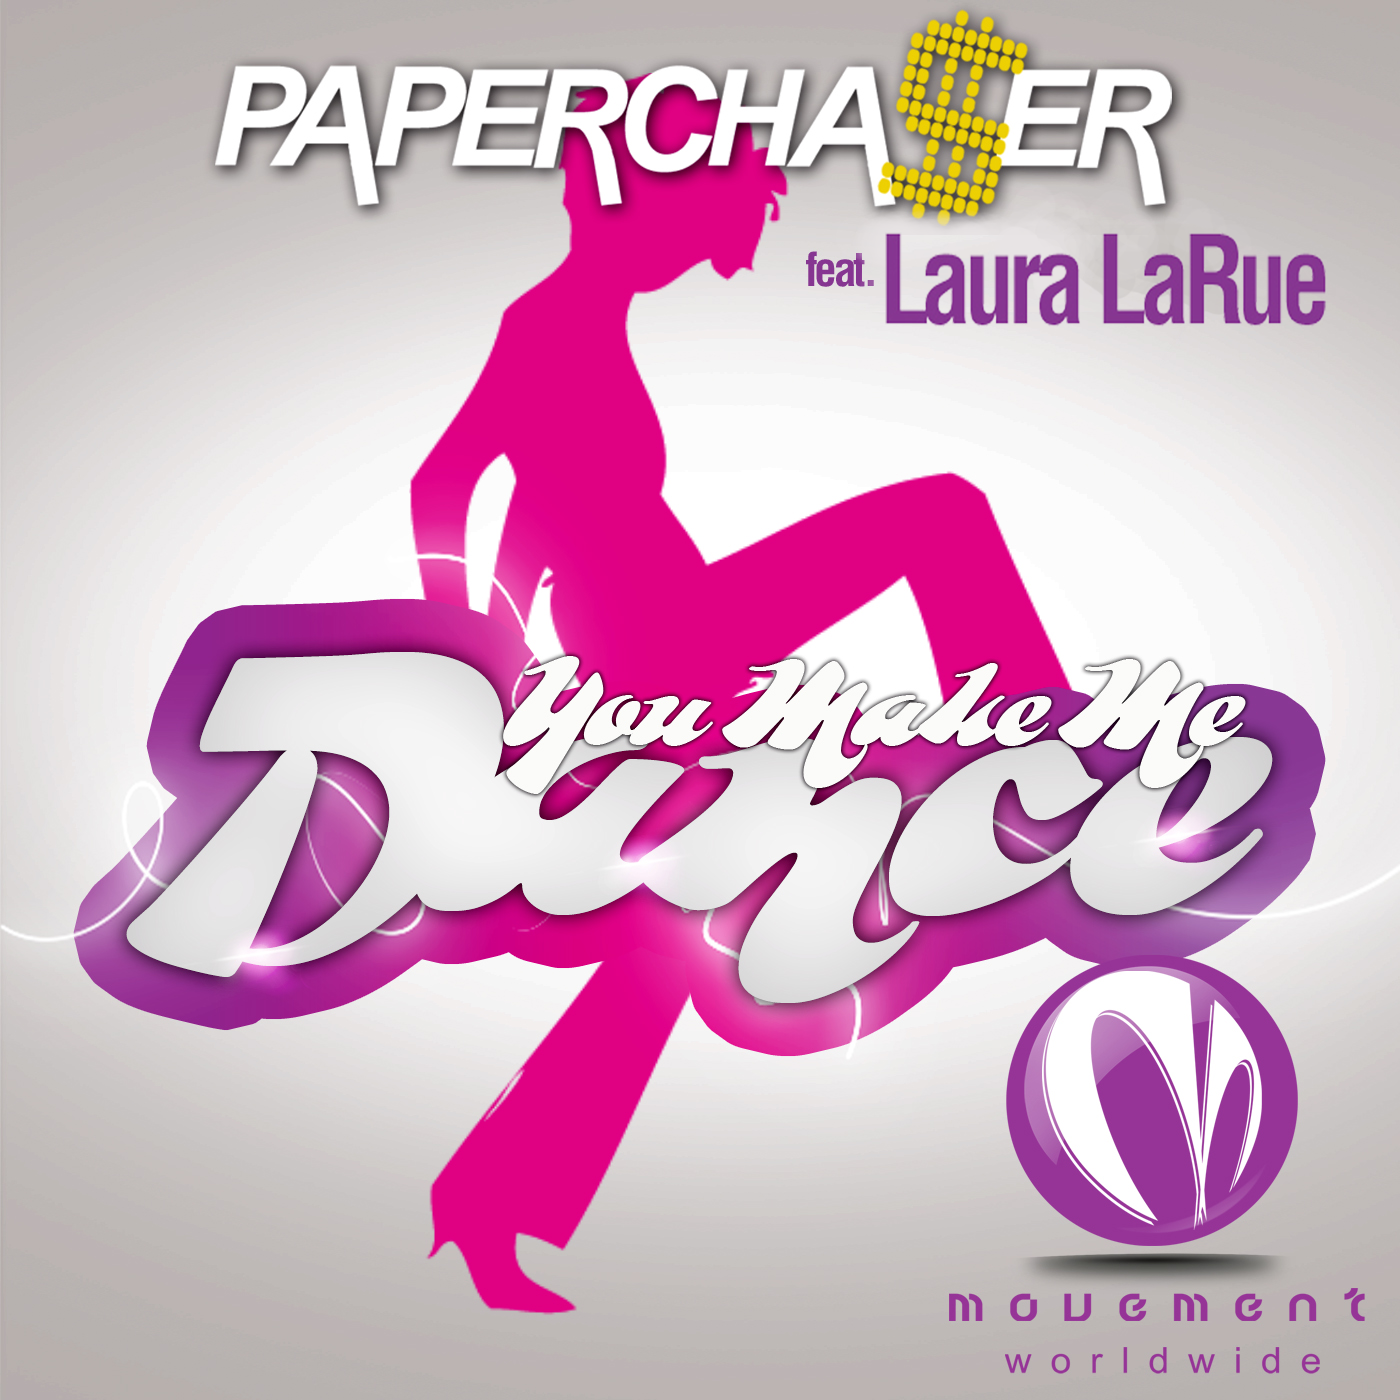 papercha$er laura larue non sequitur you make me dance movement music primary wave